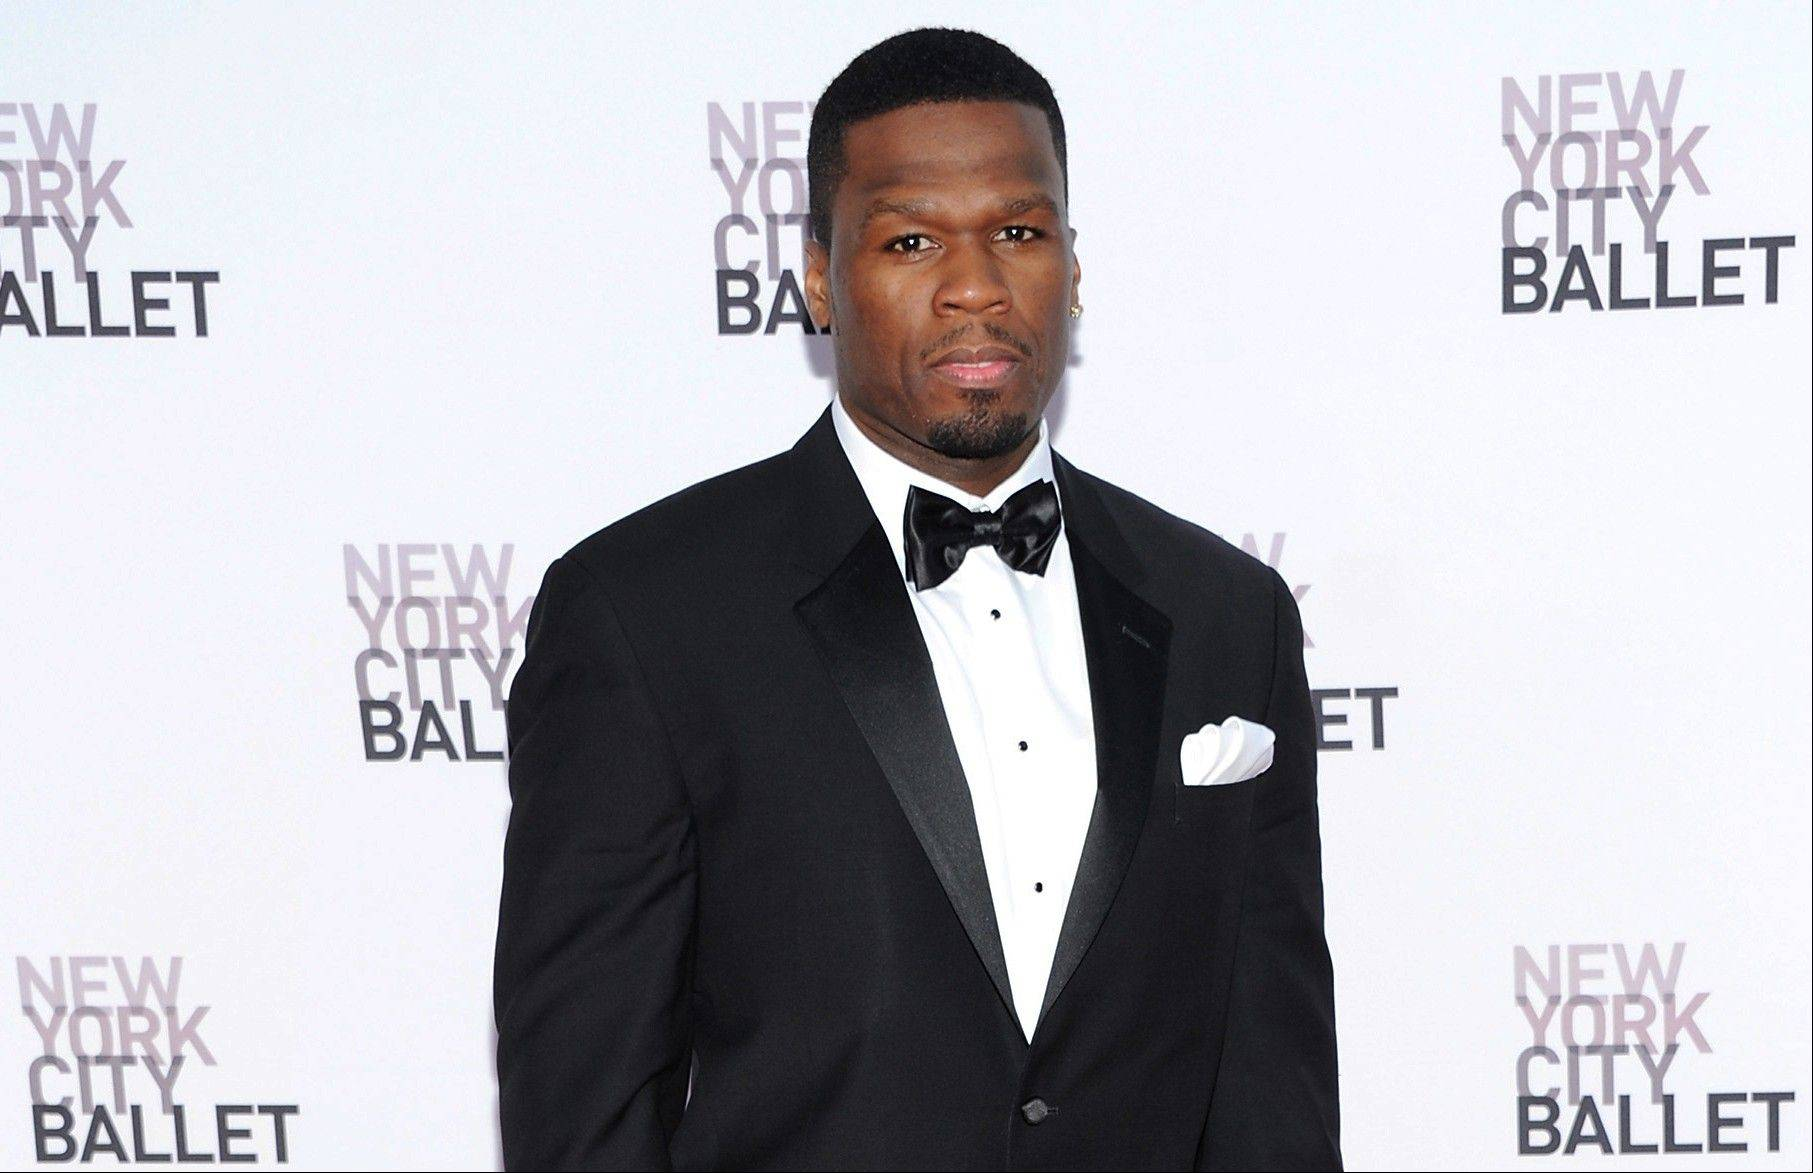 Curtis �50 Cent� Jackson said he�s excited to be a part of the new Sundance series �Dream School� because the reality show focuses on uplifting people. The show, which debuted Monday, Oct. 7, follows a group of high school dropouts who are trying to graduate.